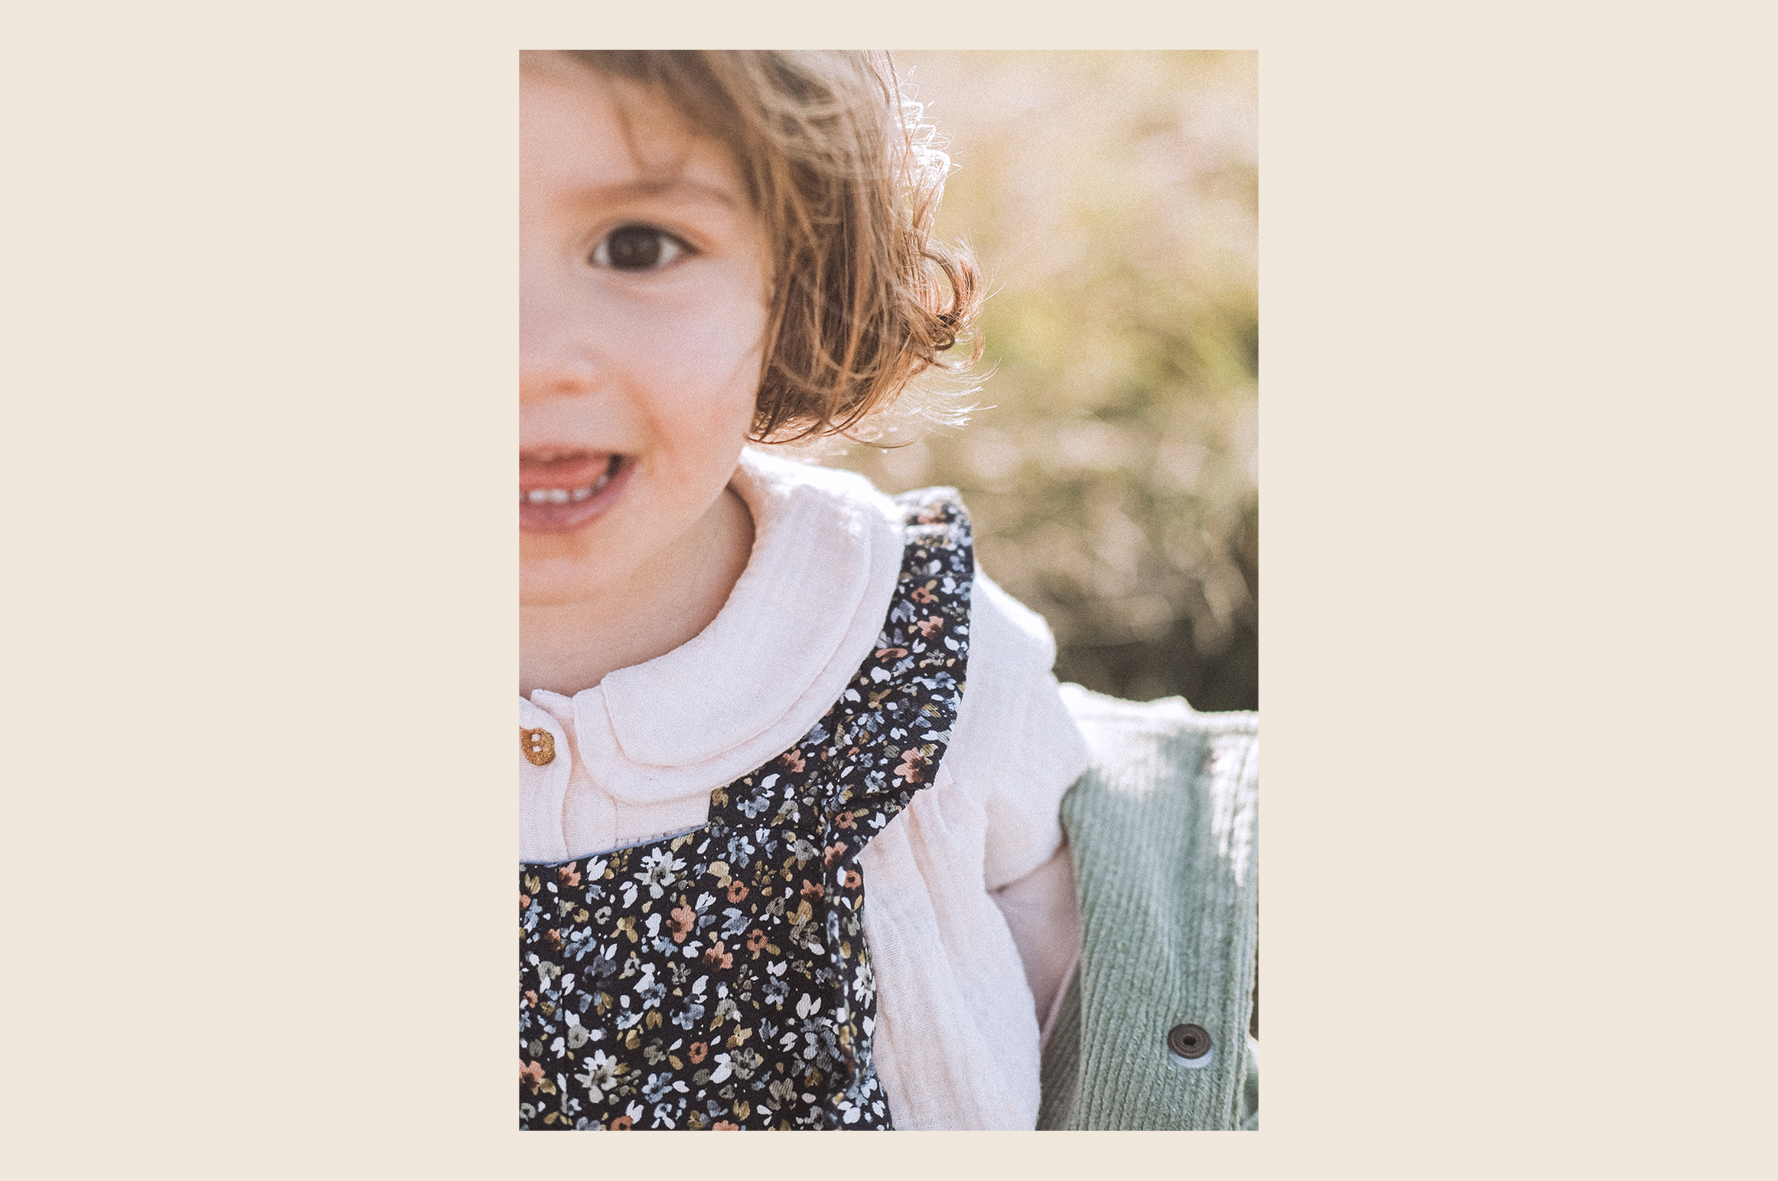 aw21-grace-baby-and-child-campaign-11